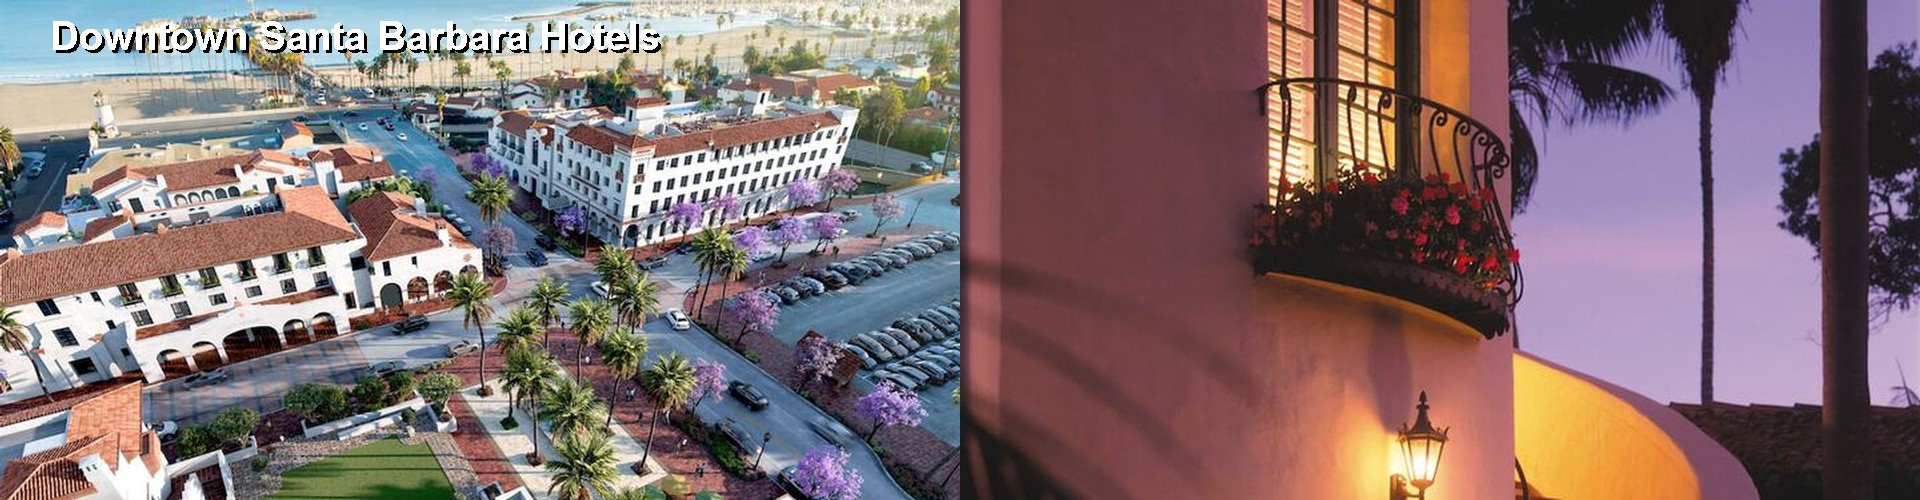 5 Best Hotels near Downtown Santa Barbara